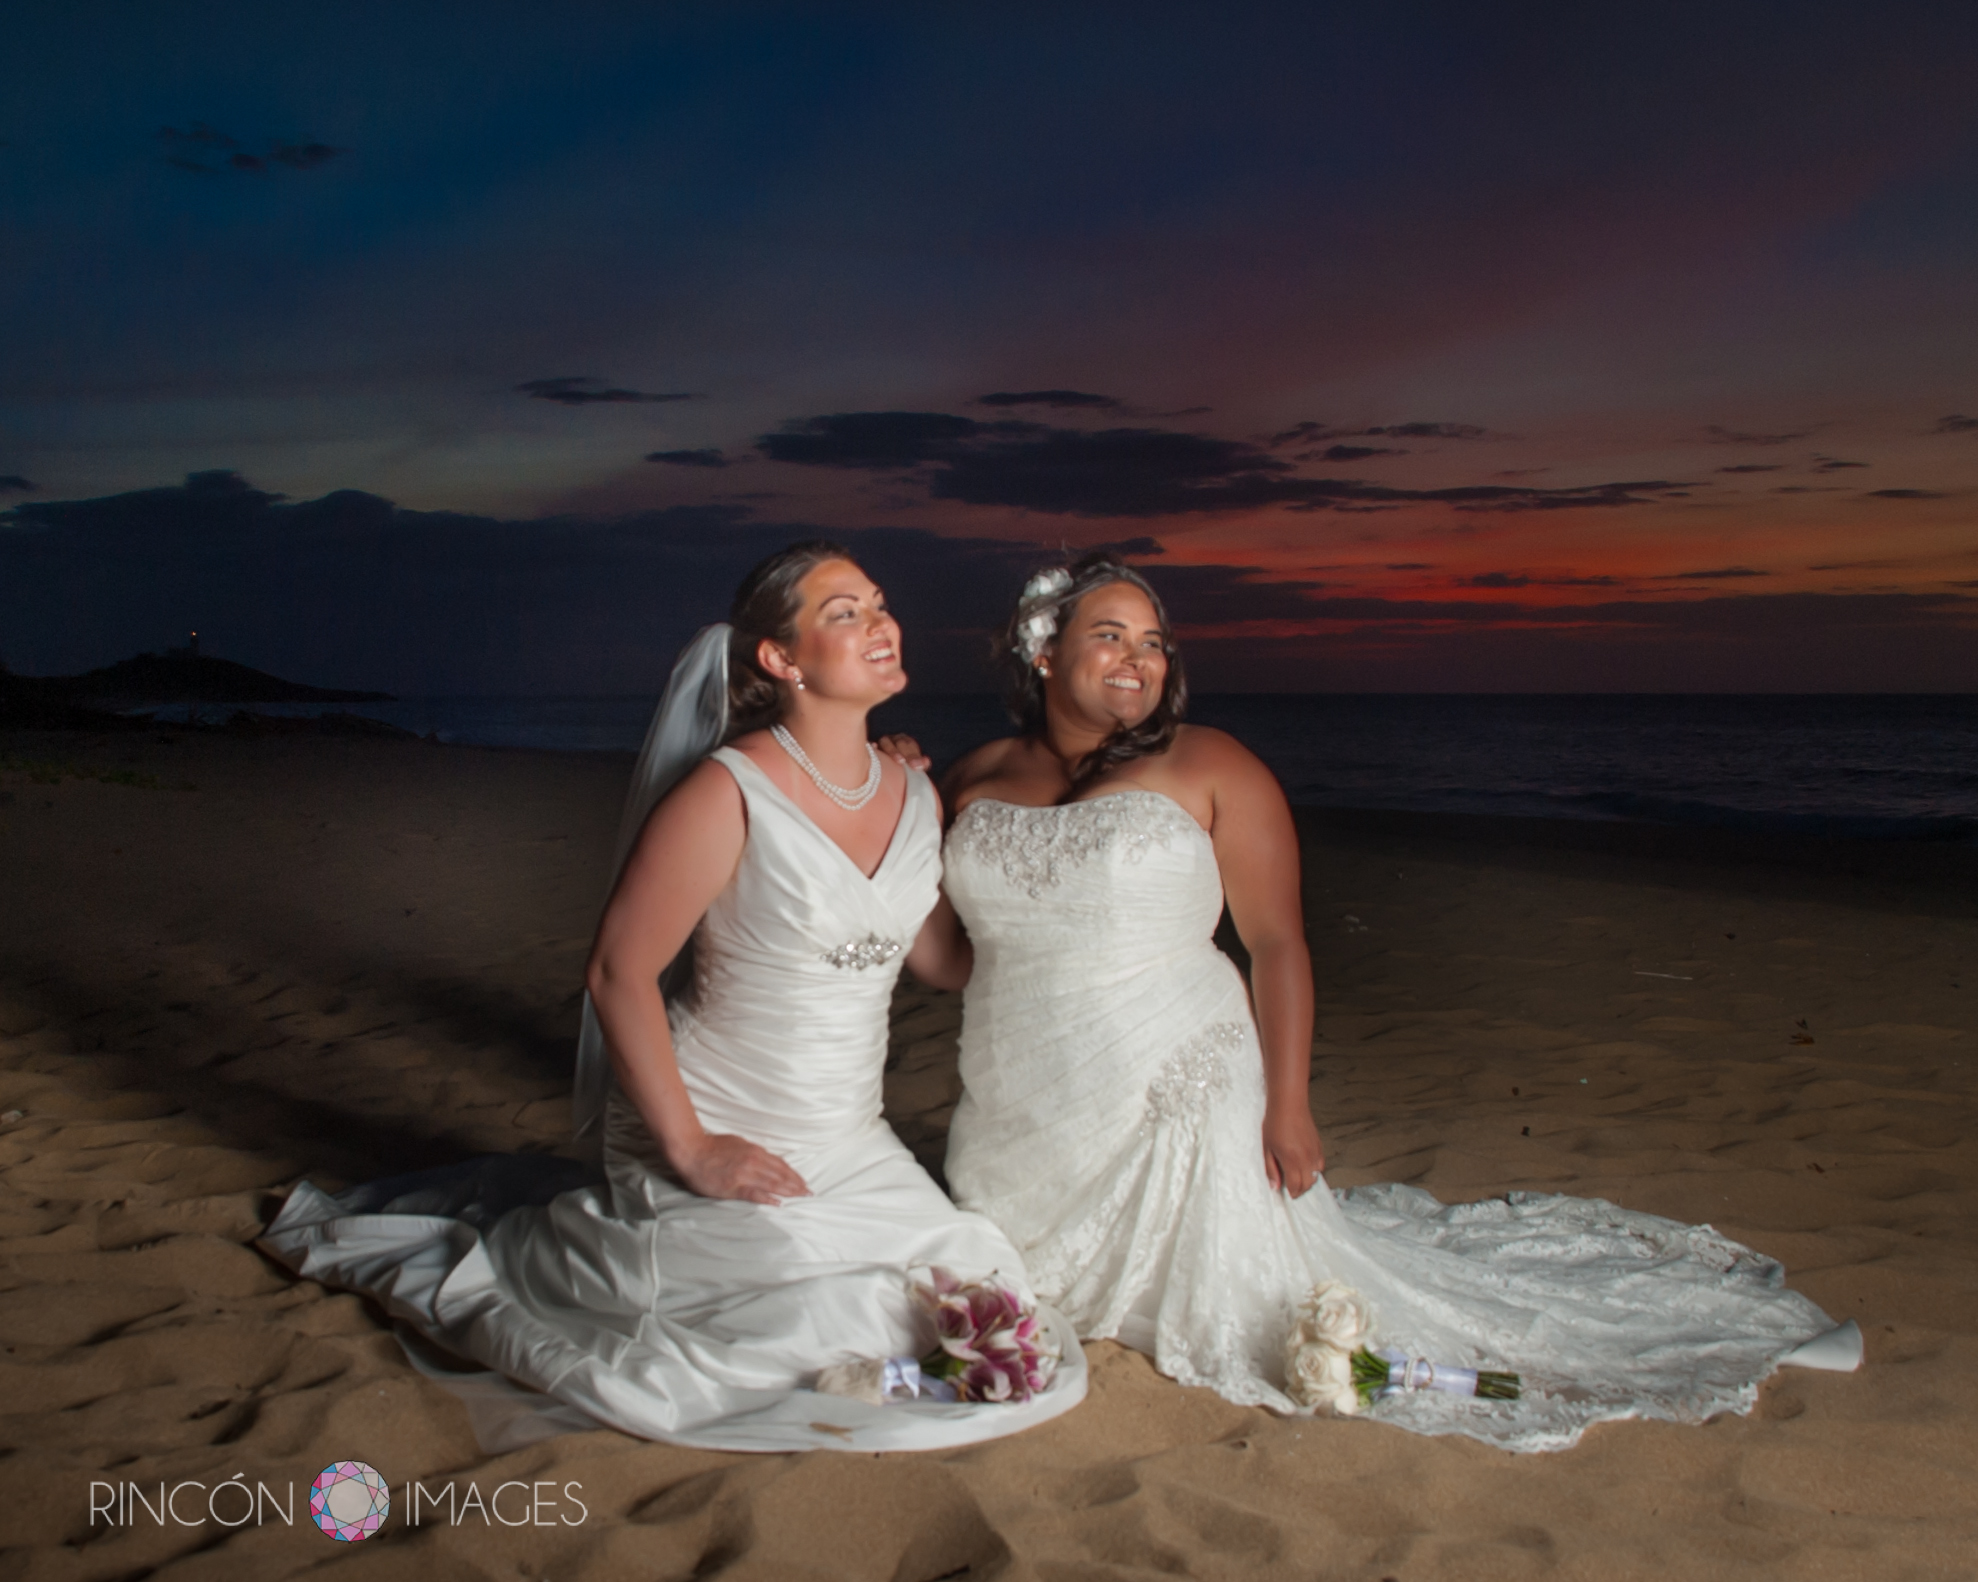 Published forreal lgbt wedding photography puerto rico puerto a beautiful sunset with two lgbt brides on the beach in puerto rico after their wedding junglespirit Gallery